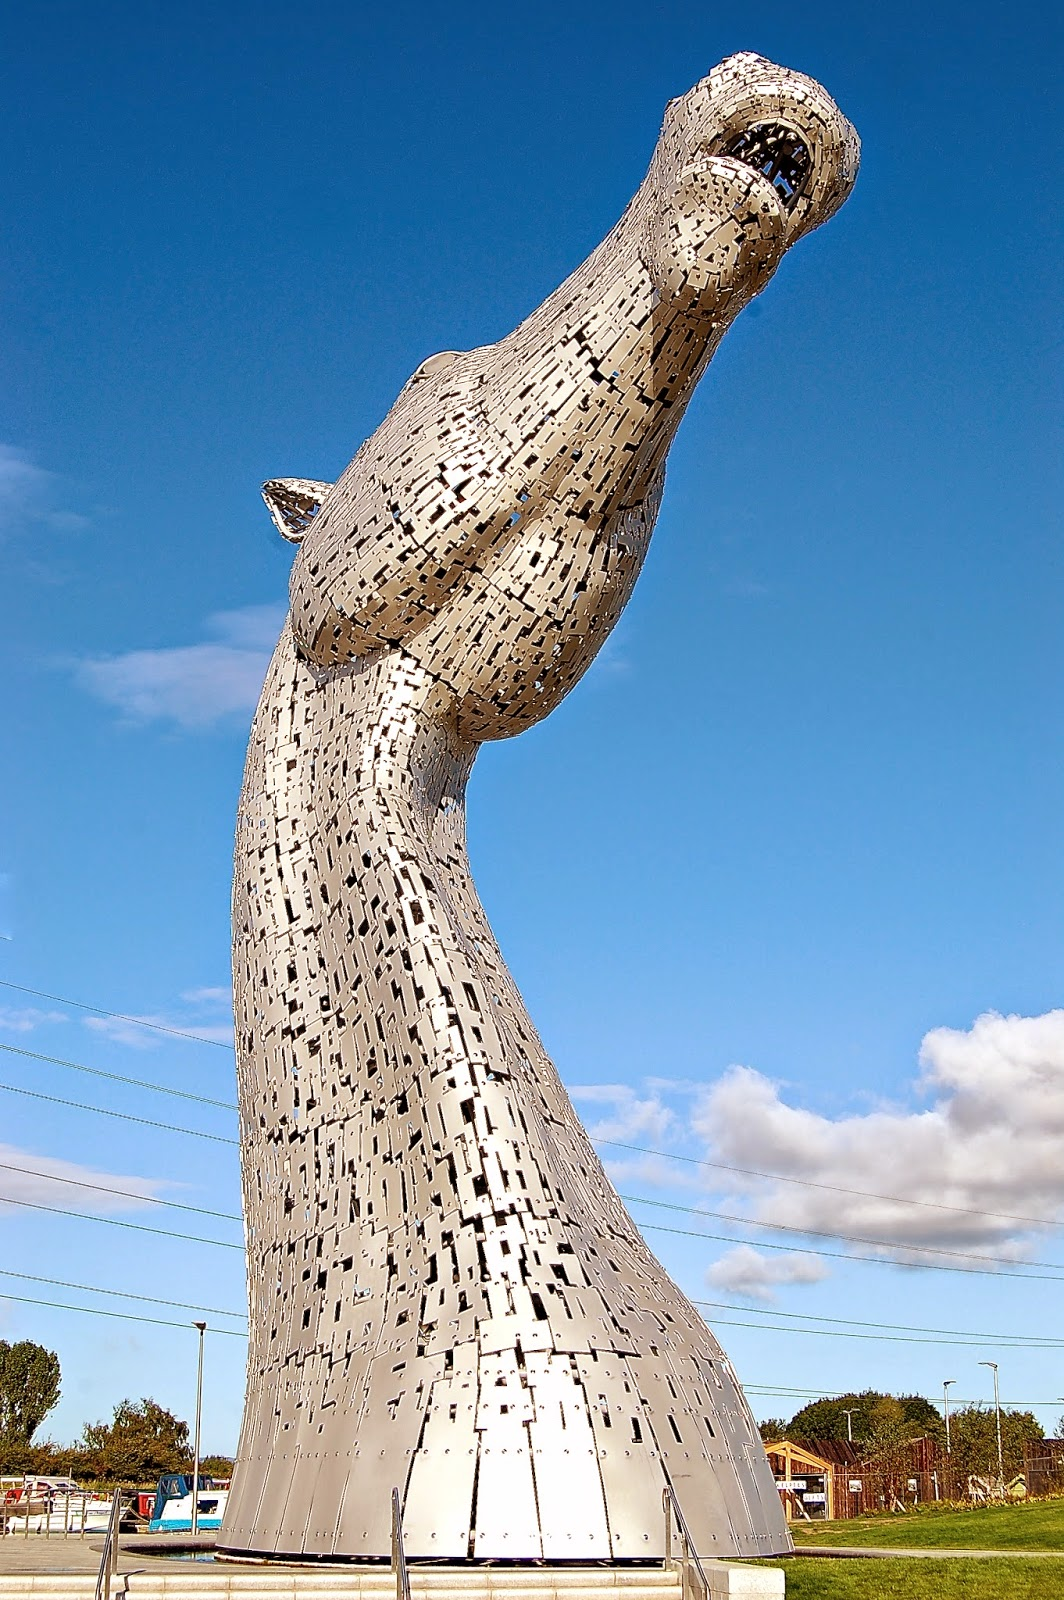 Kelpie with head raised, Falkirk, Scotland